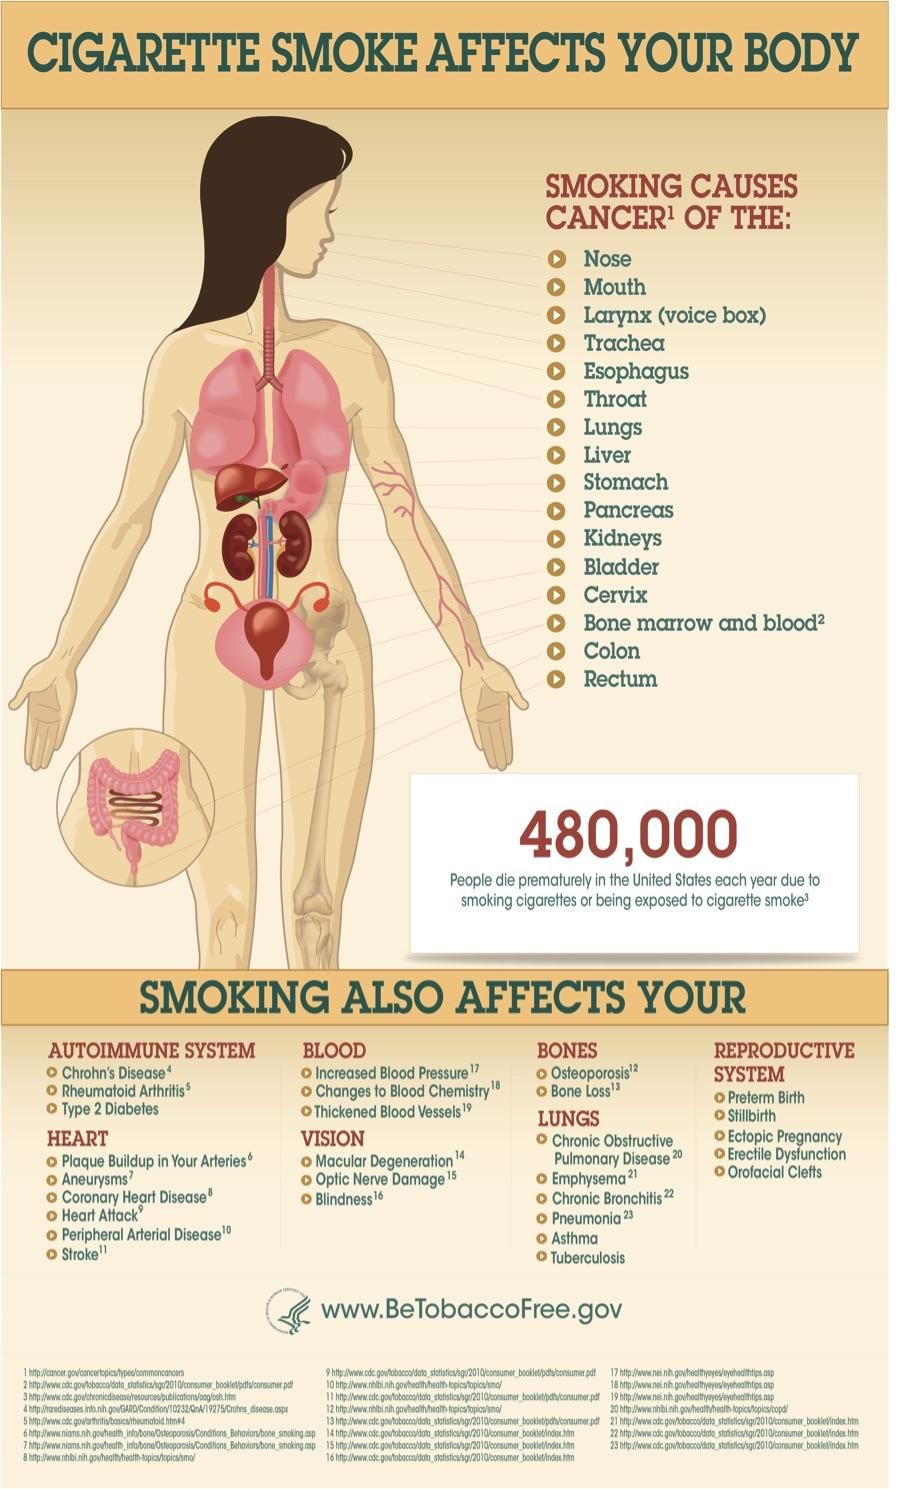 Cigarette smoke affects your body